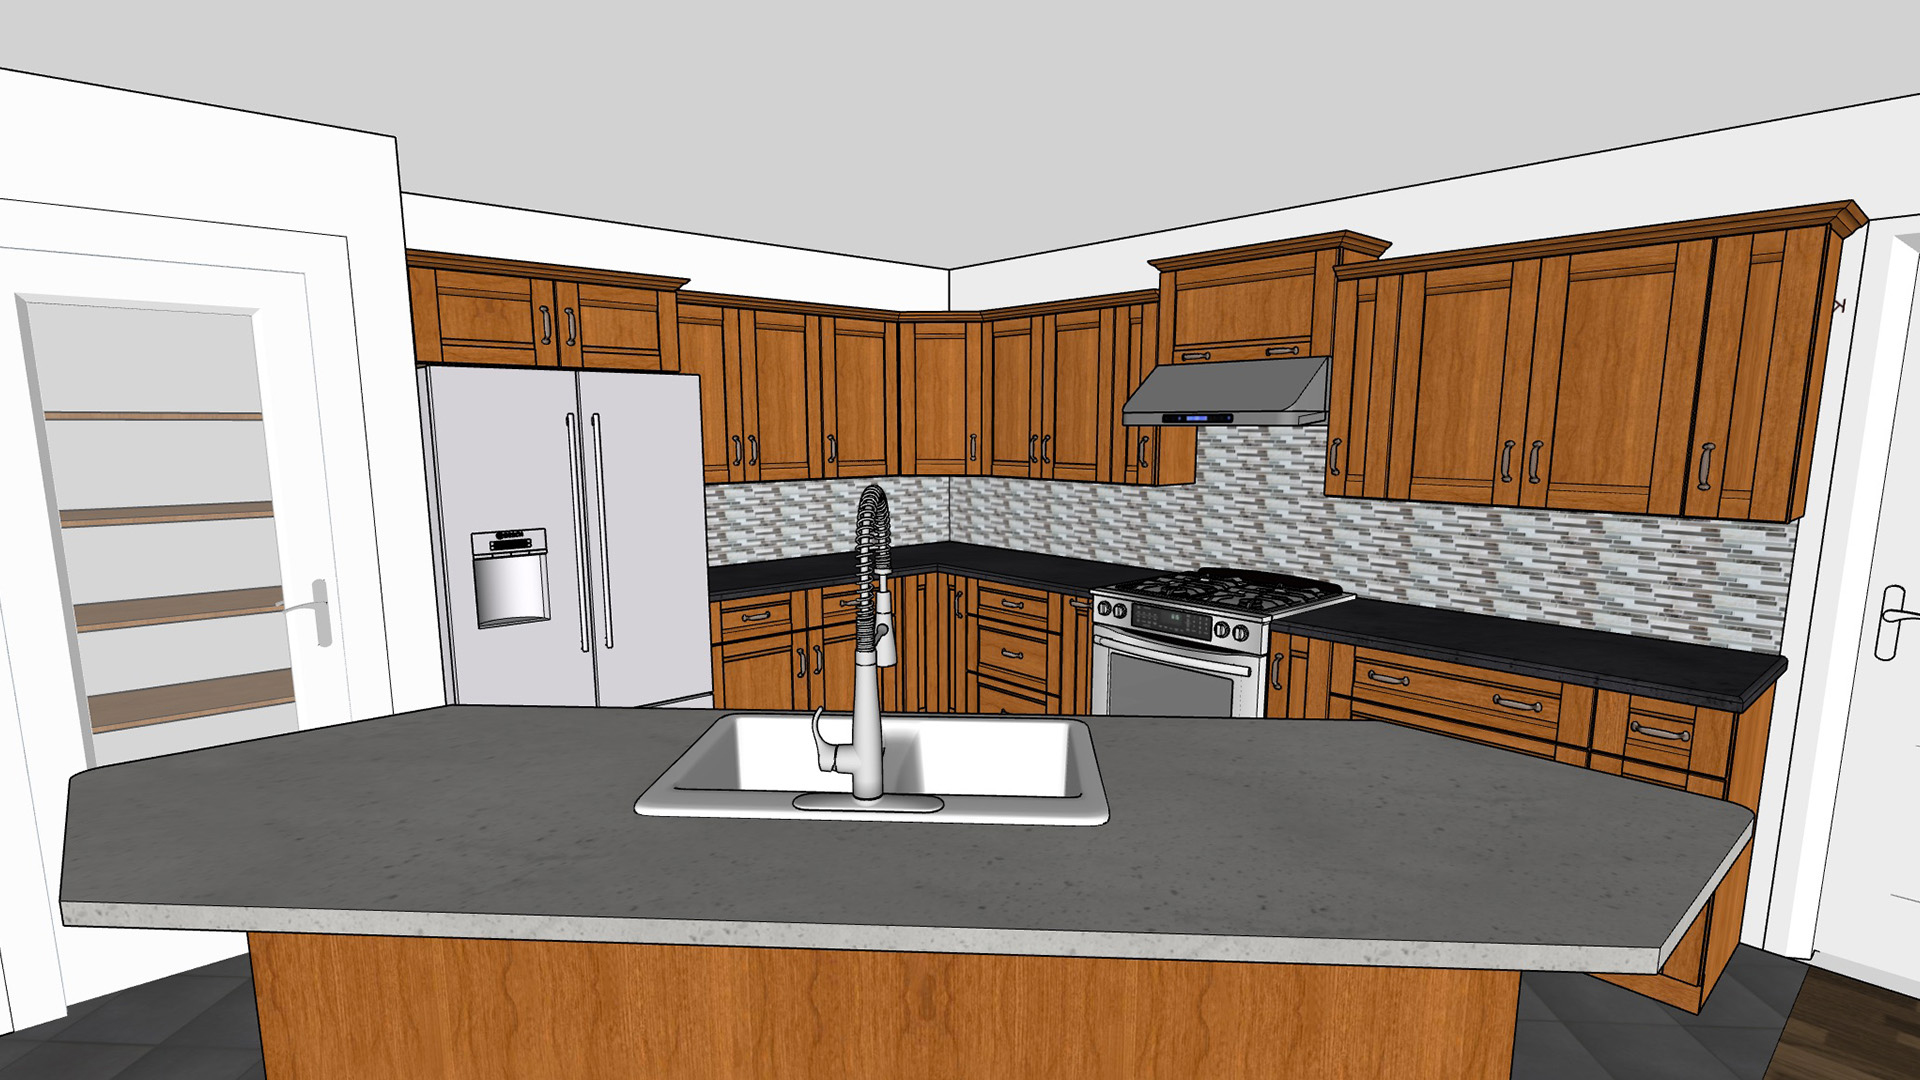 Learn About Sketchup And Kitchen Design